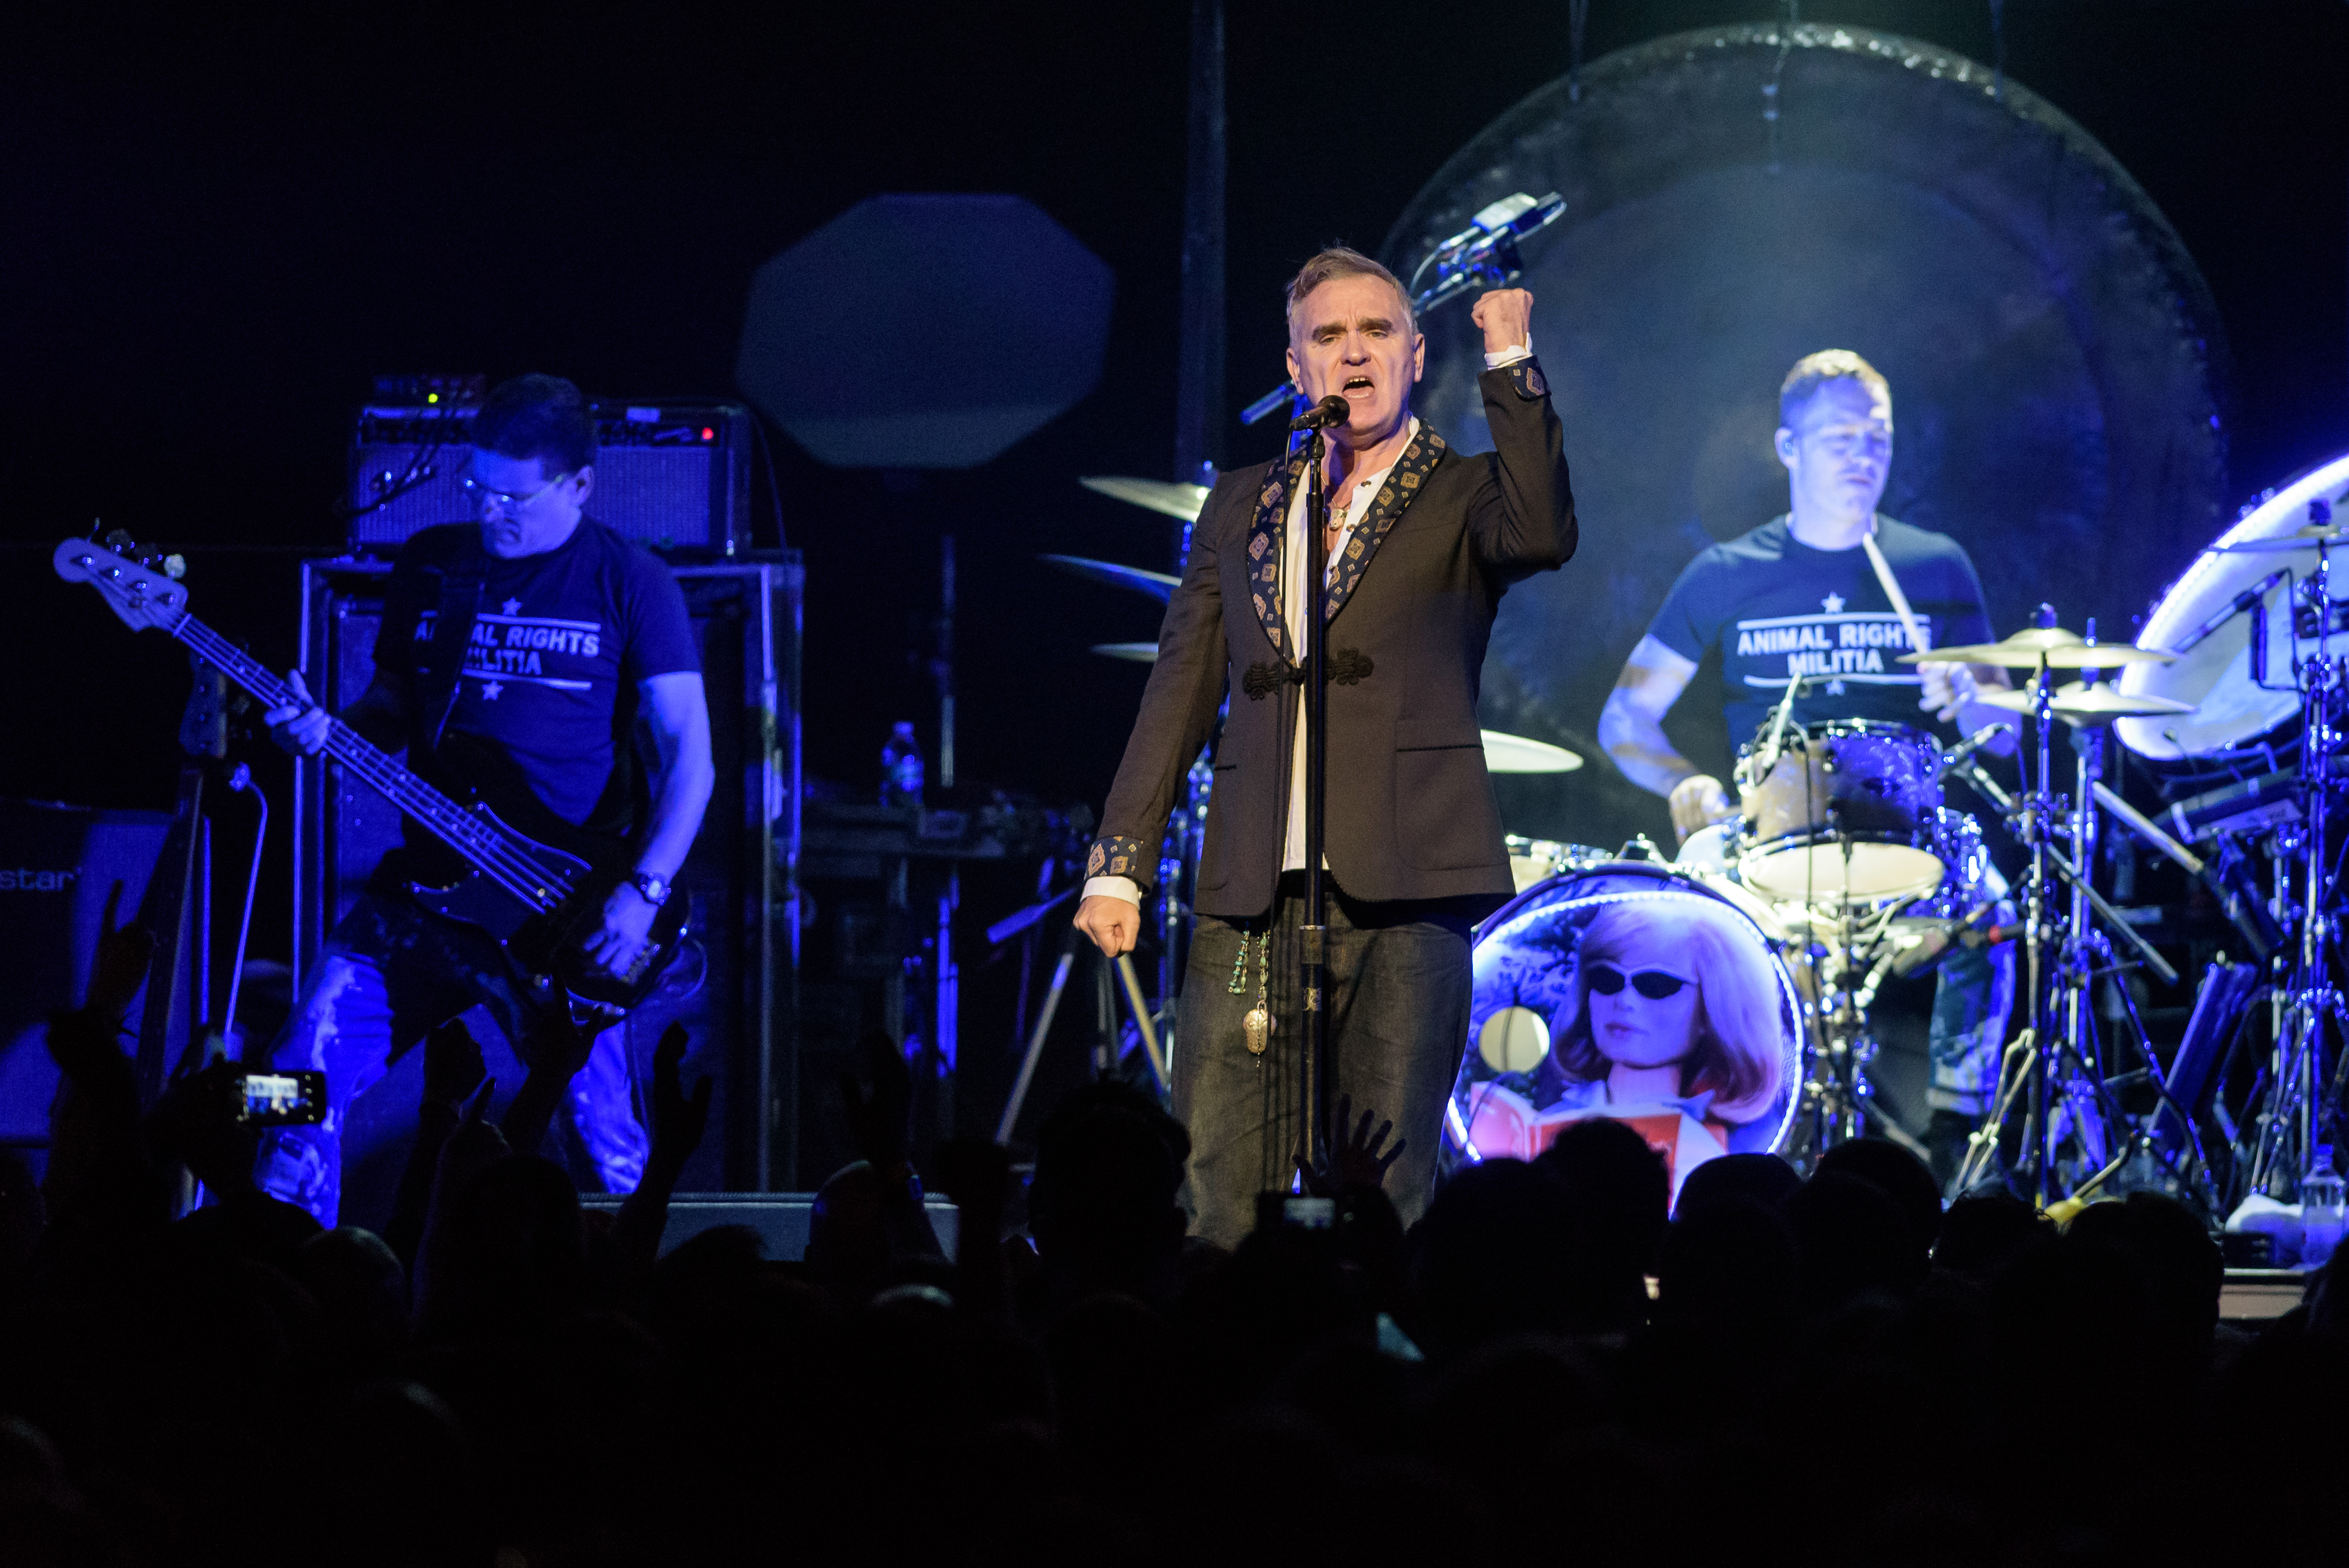 Morrissey Performs at The Anthem in Washington, D.C.